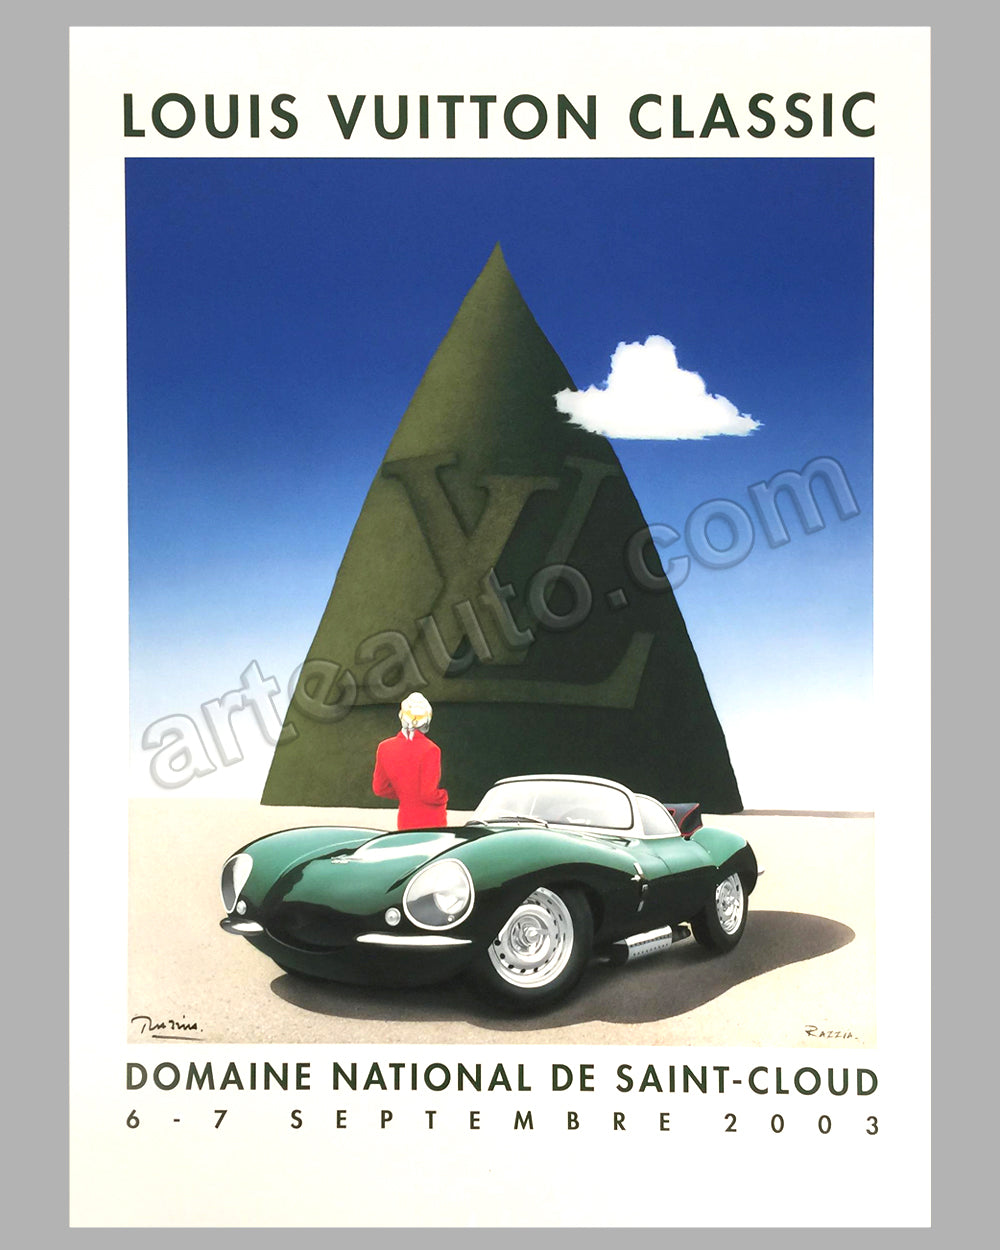 Louis Vuitton Classic Concours d'Elegance St Cloud 2003 poster by Razzia